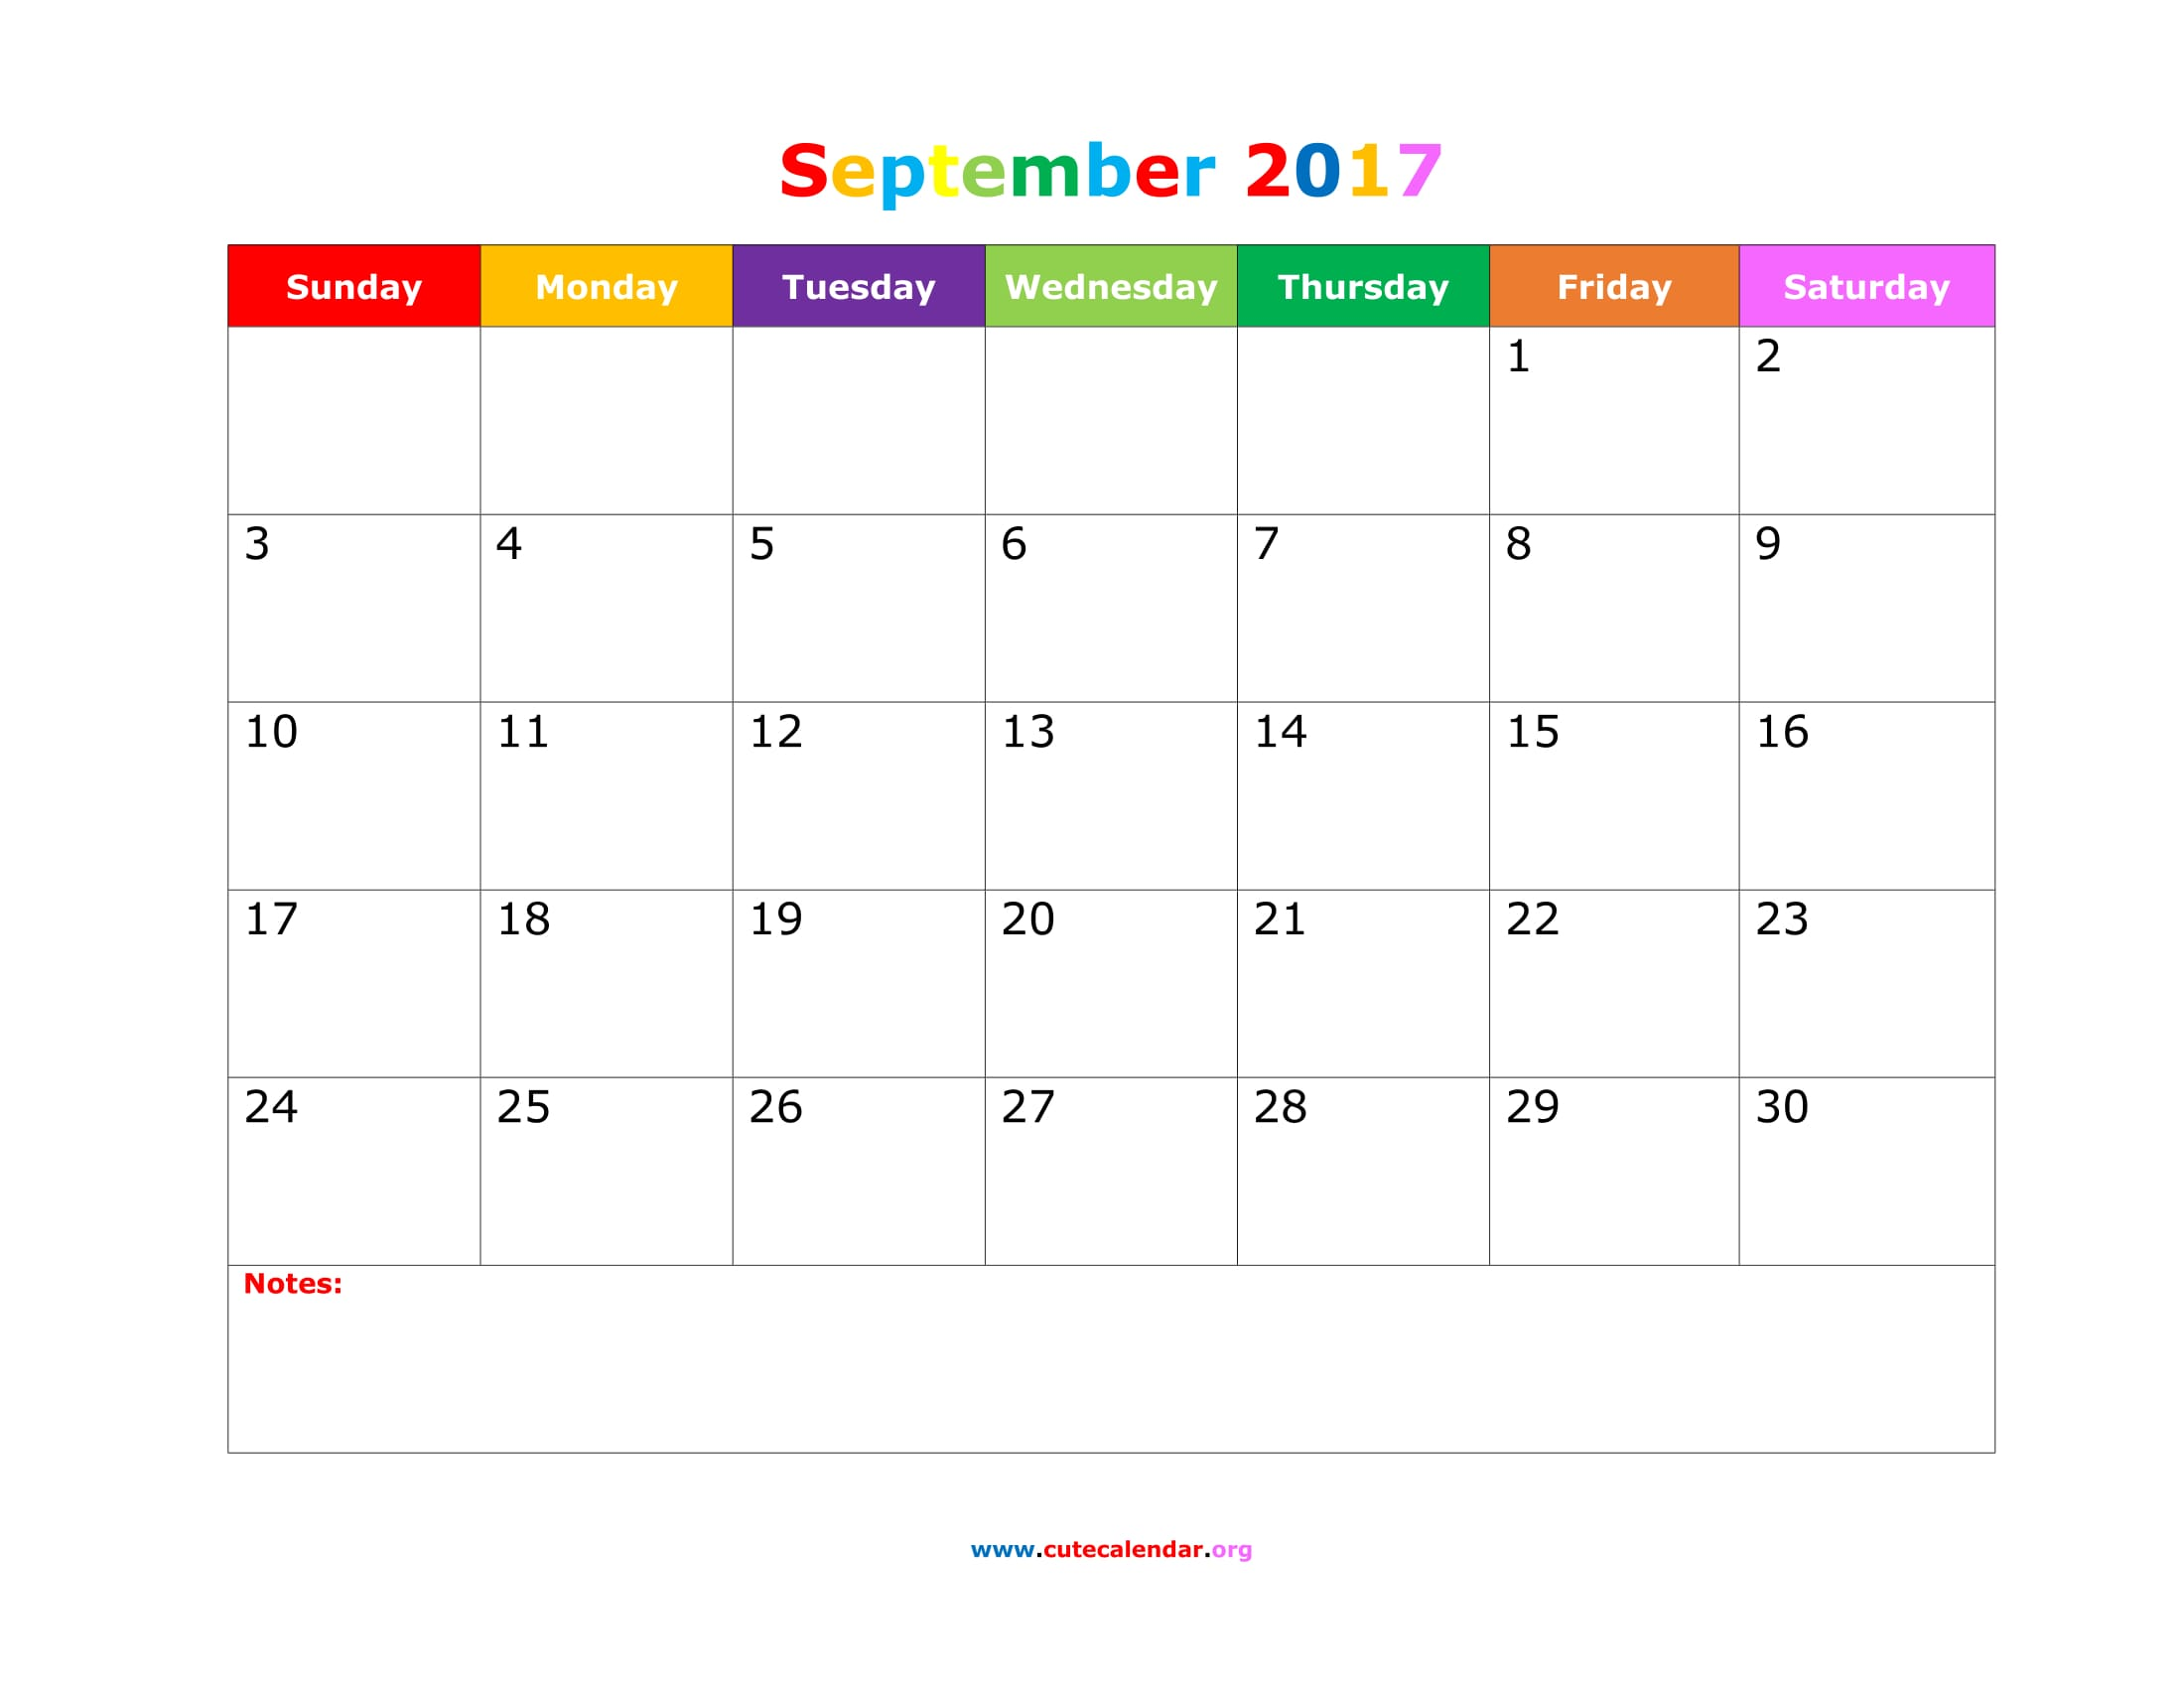 September Calendar 2017 Printable Cute – September printable calendars